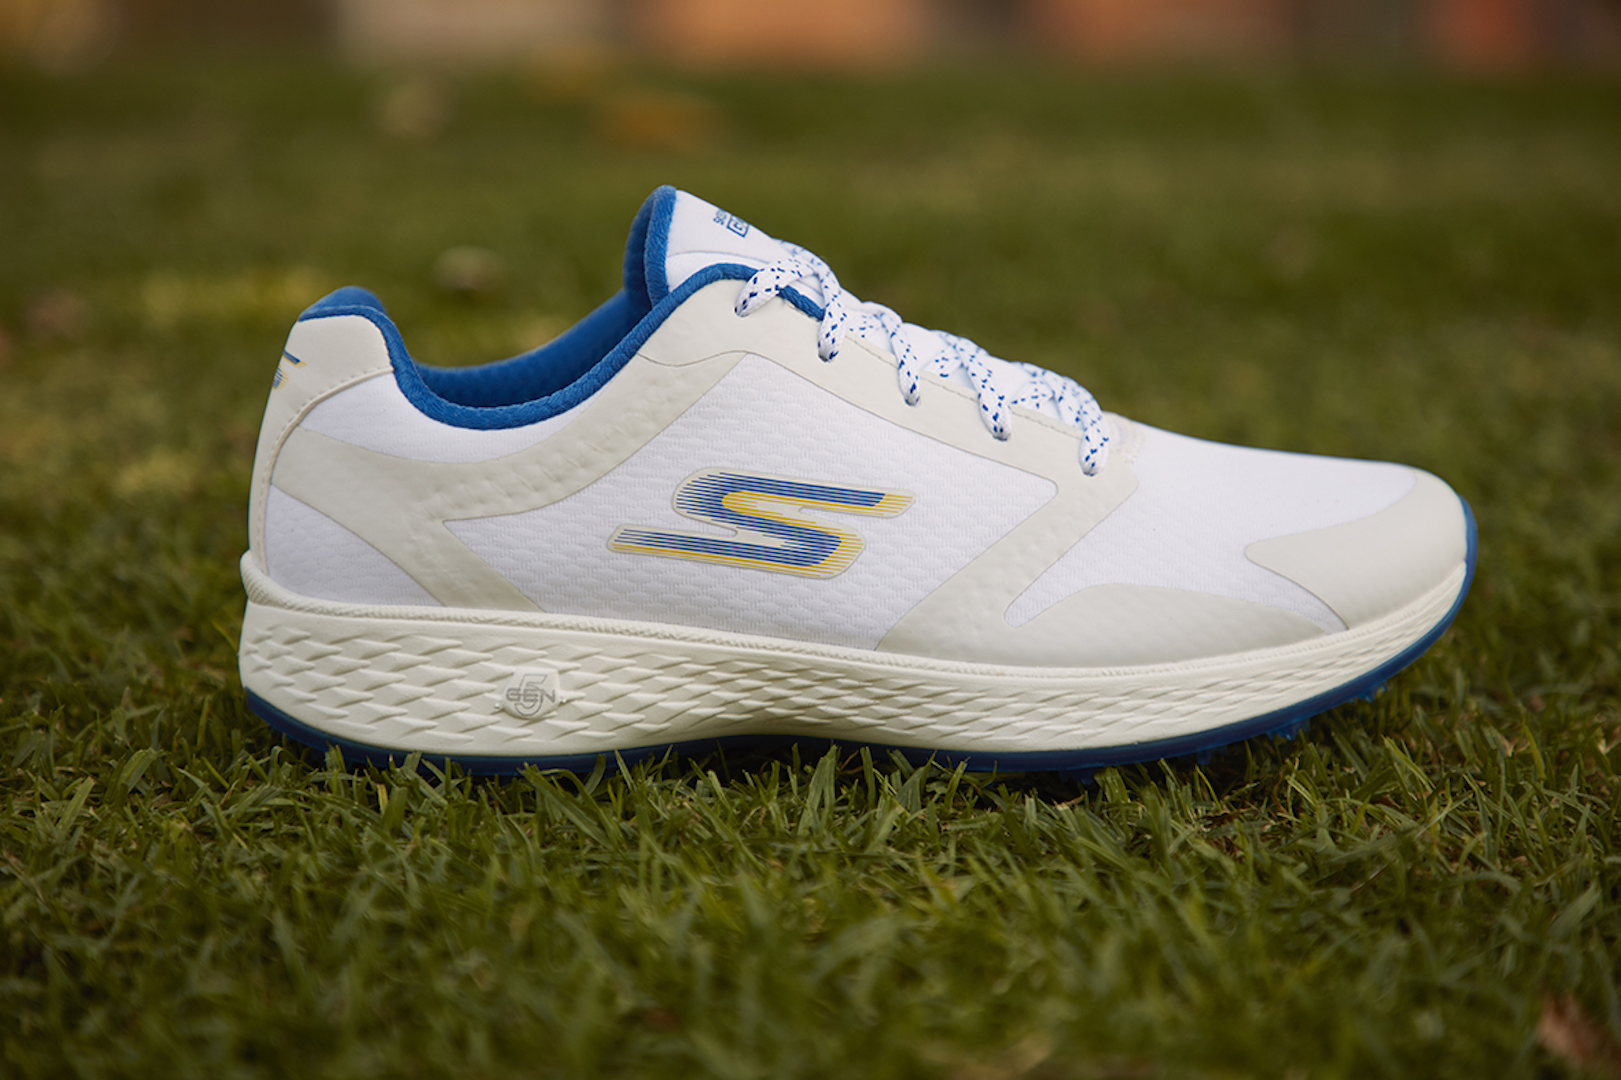 Skechers Performance announced as official shoe